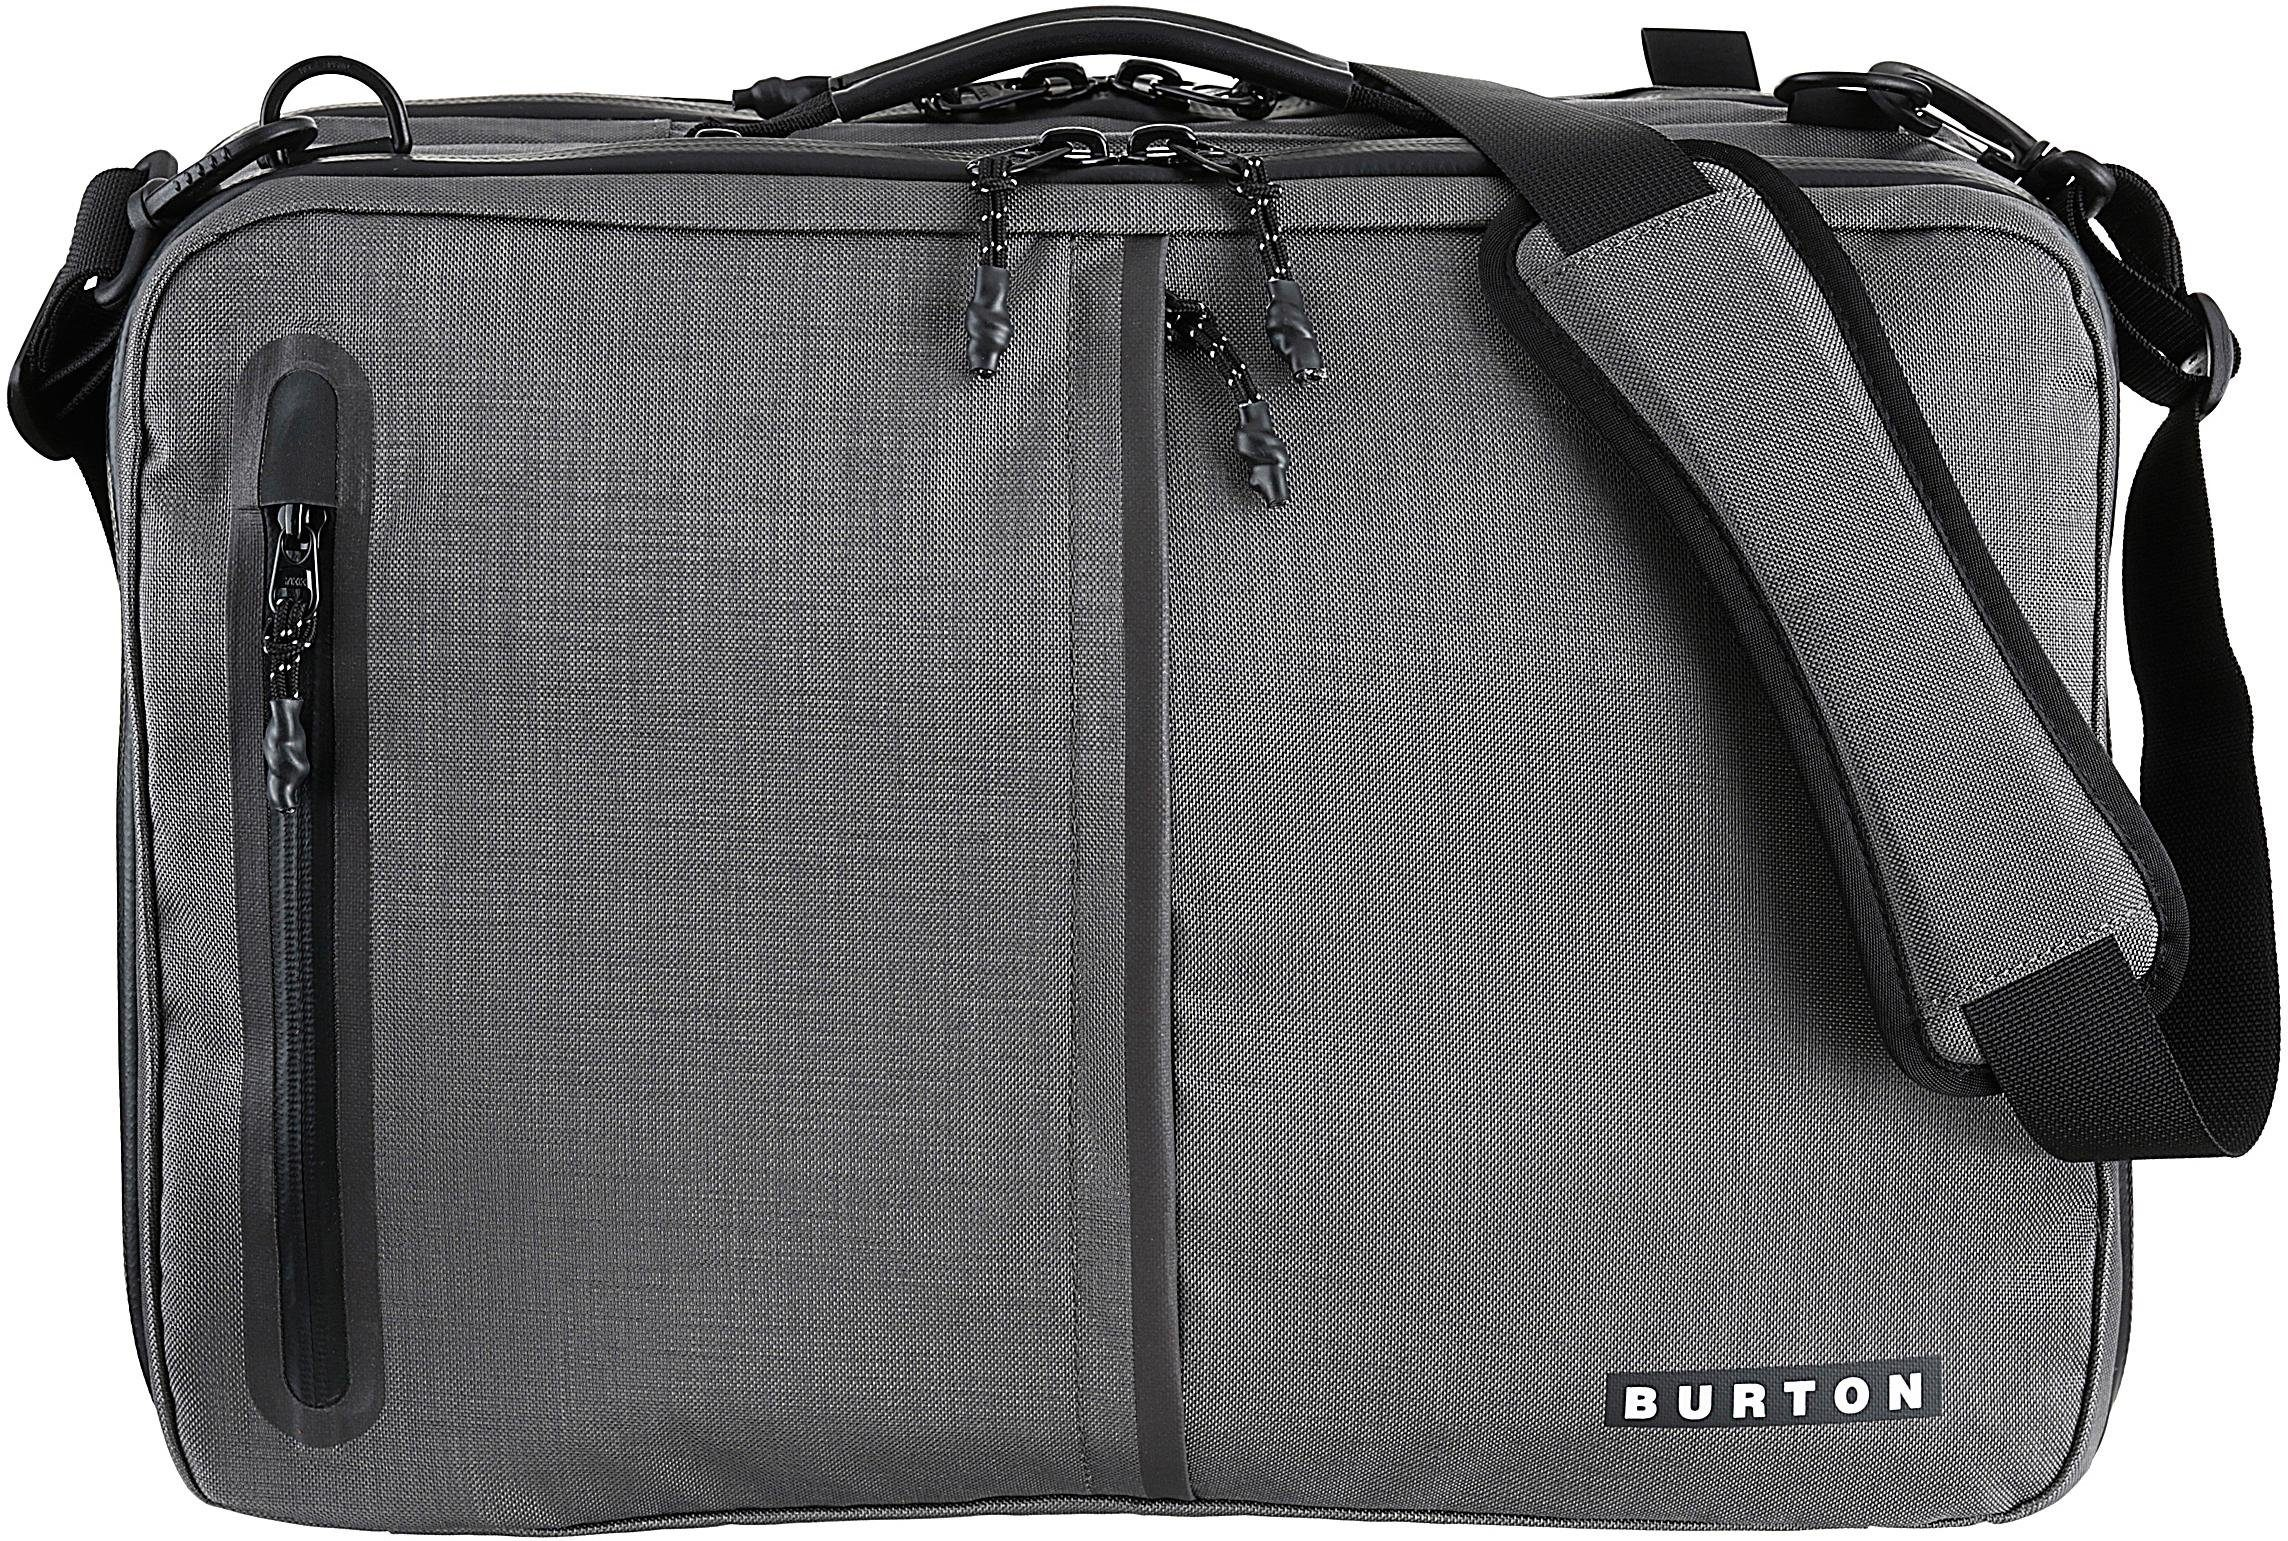 Burton Aktentasche mit Rucksackfunktion, »Switchup, Moon Mist Heather«